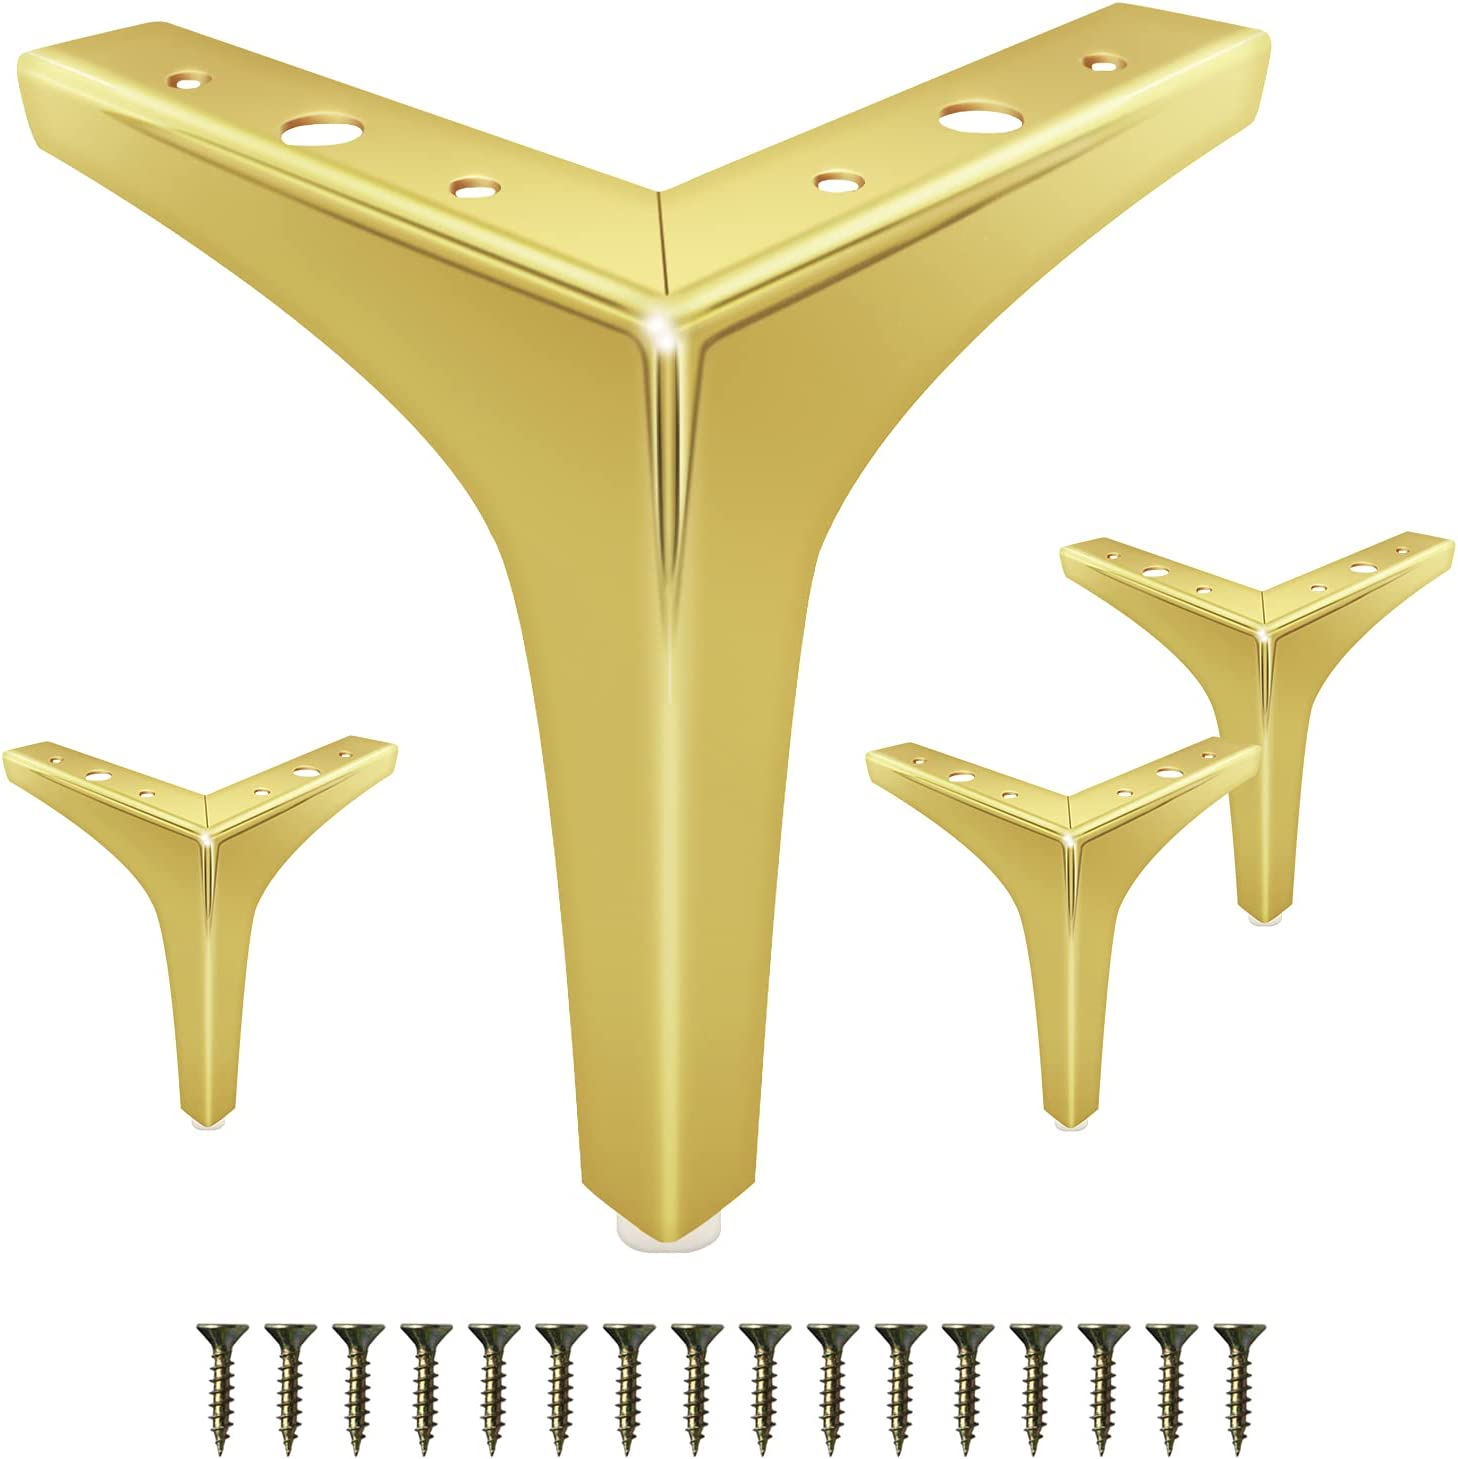 GOSCHE 6 Inch Furniture Legs Gold, Metal Sofa Legs Set of 4, Modern Style Replacement Couch Legs for Dresser Chair Bed Cabinet Table Ottoman Cupboard DIY Replacement Feet